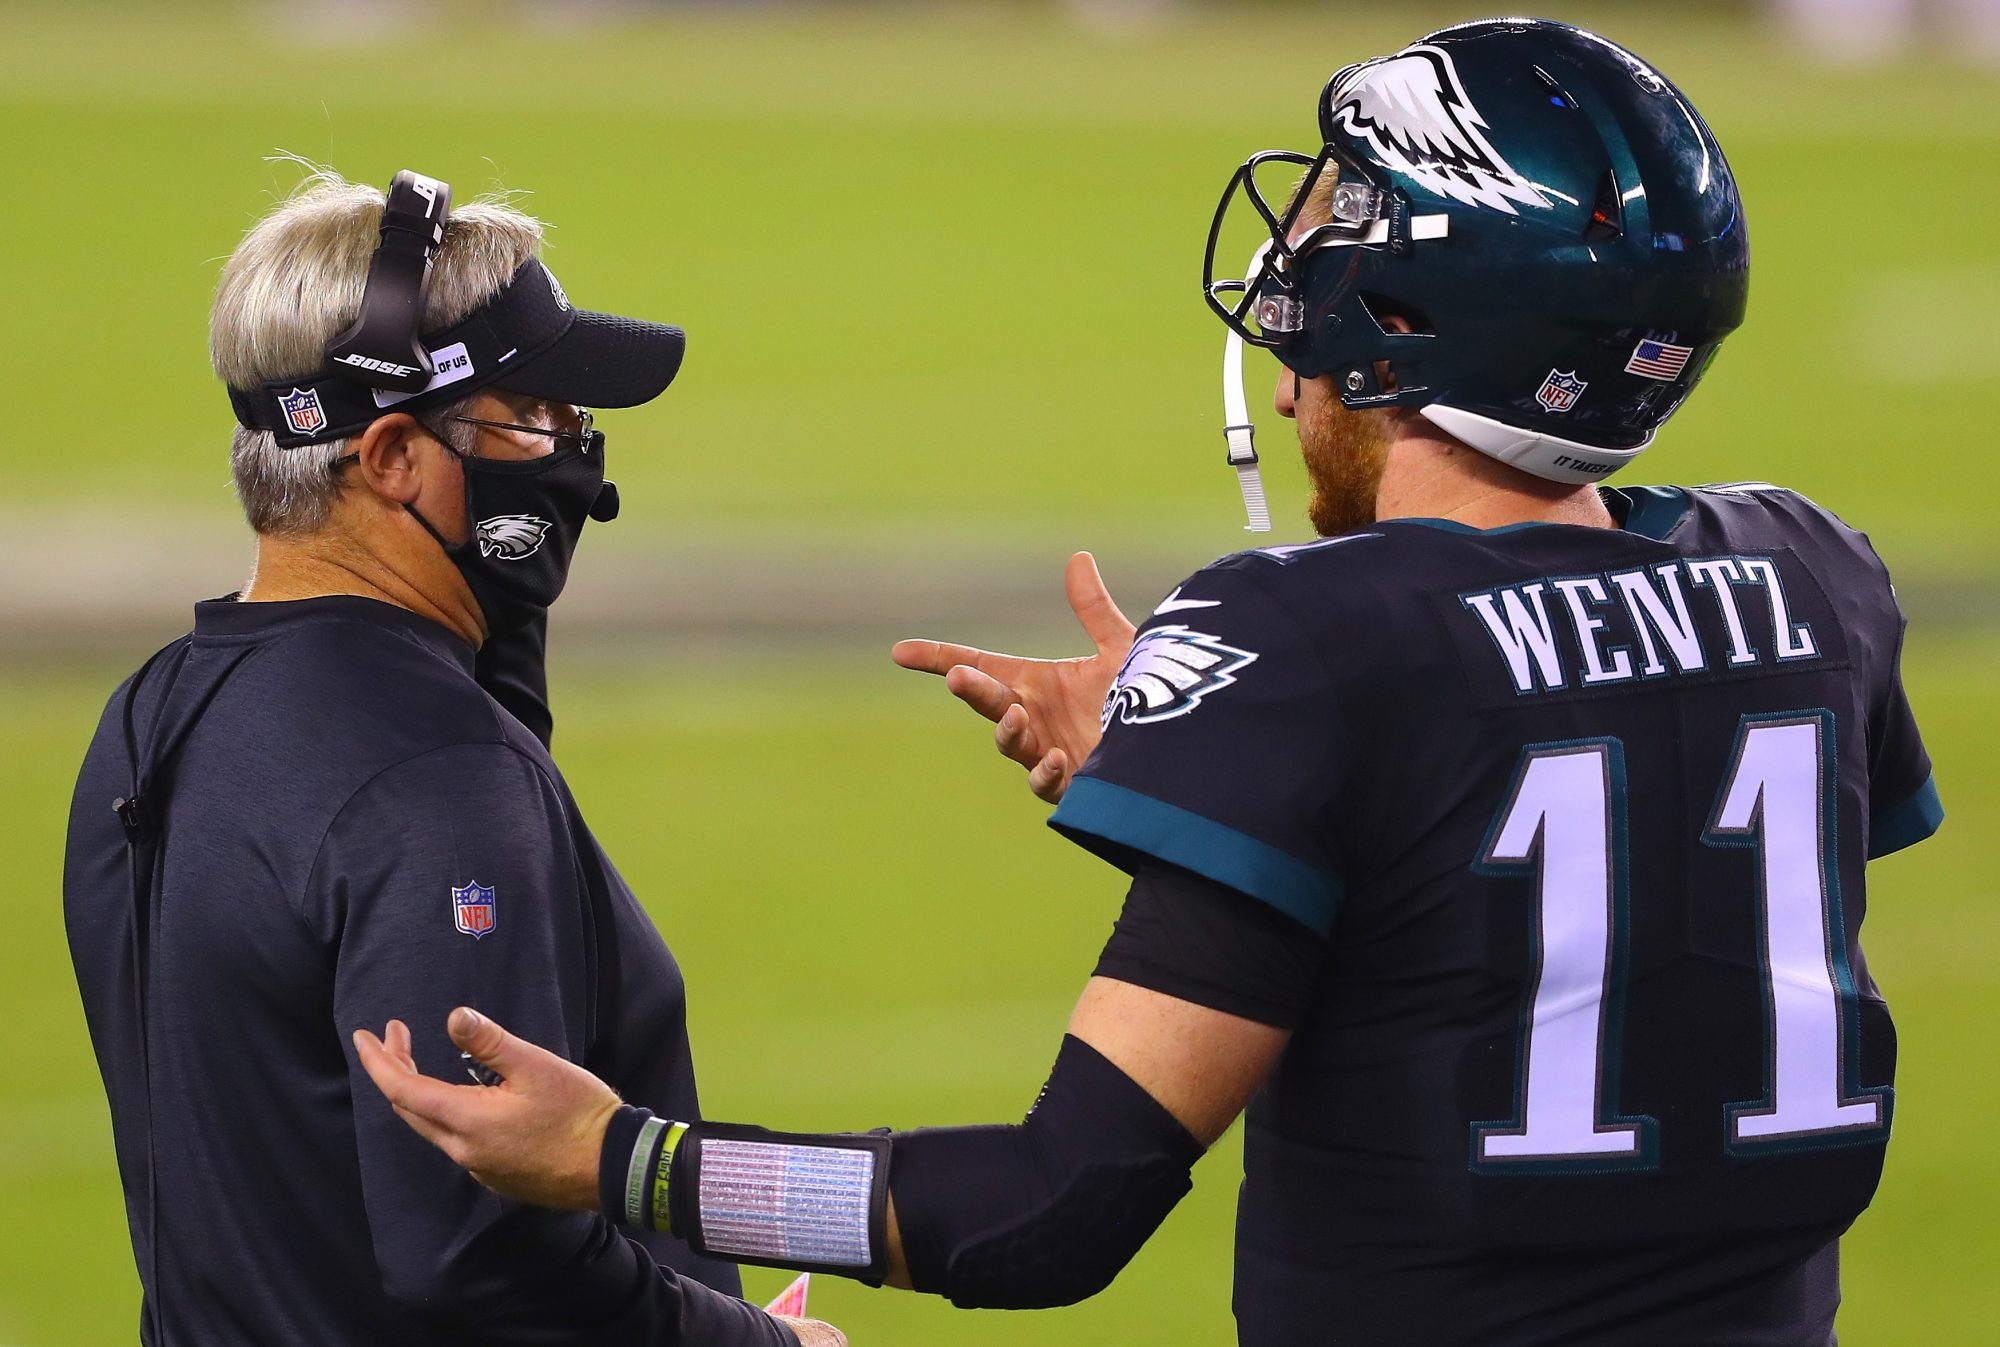 Carson Wentz and Doug Pederson share a moment together.